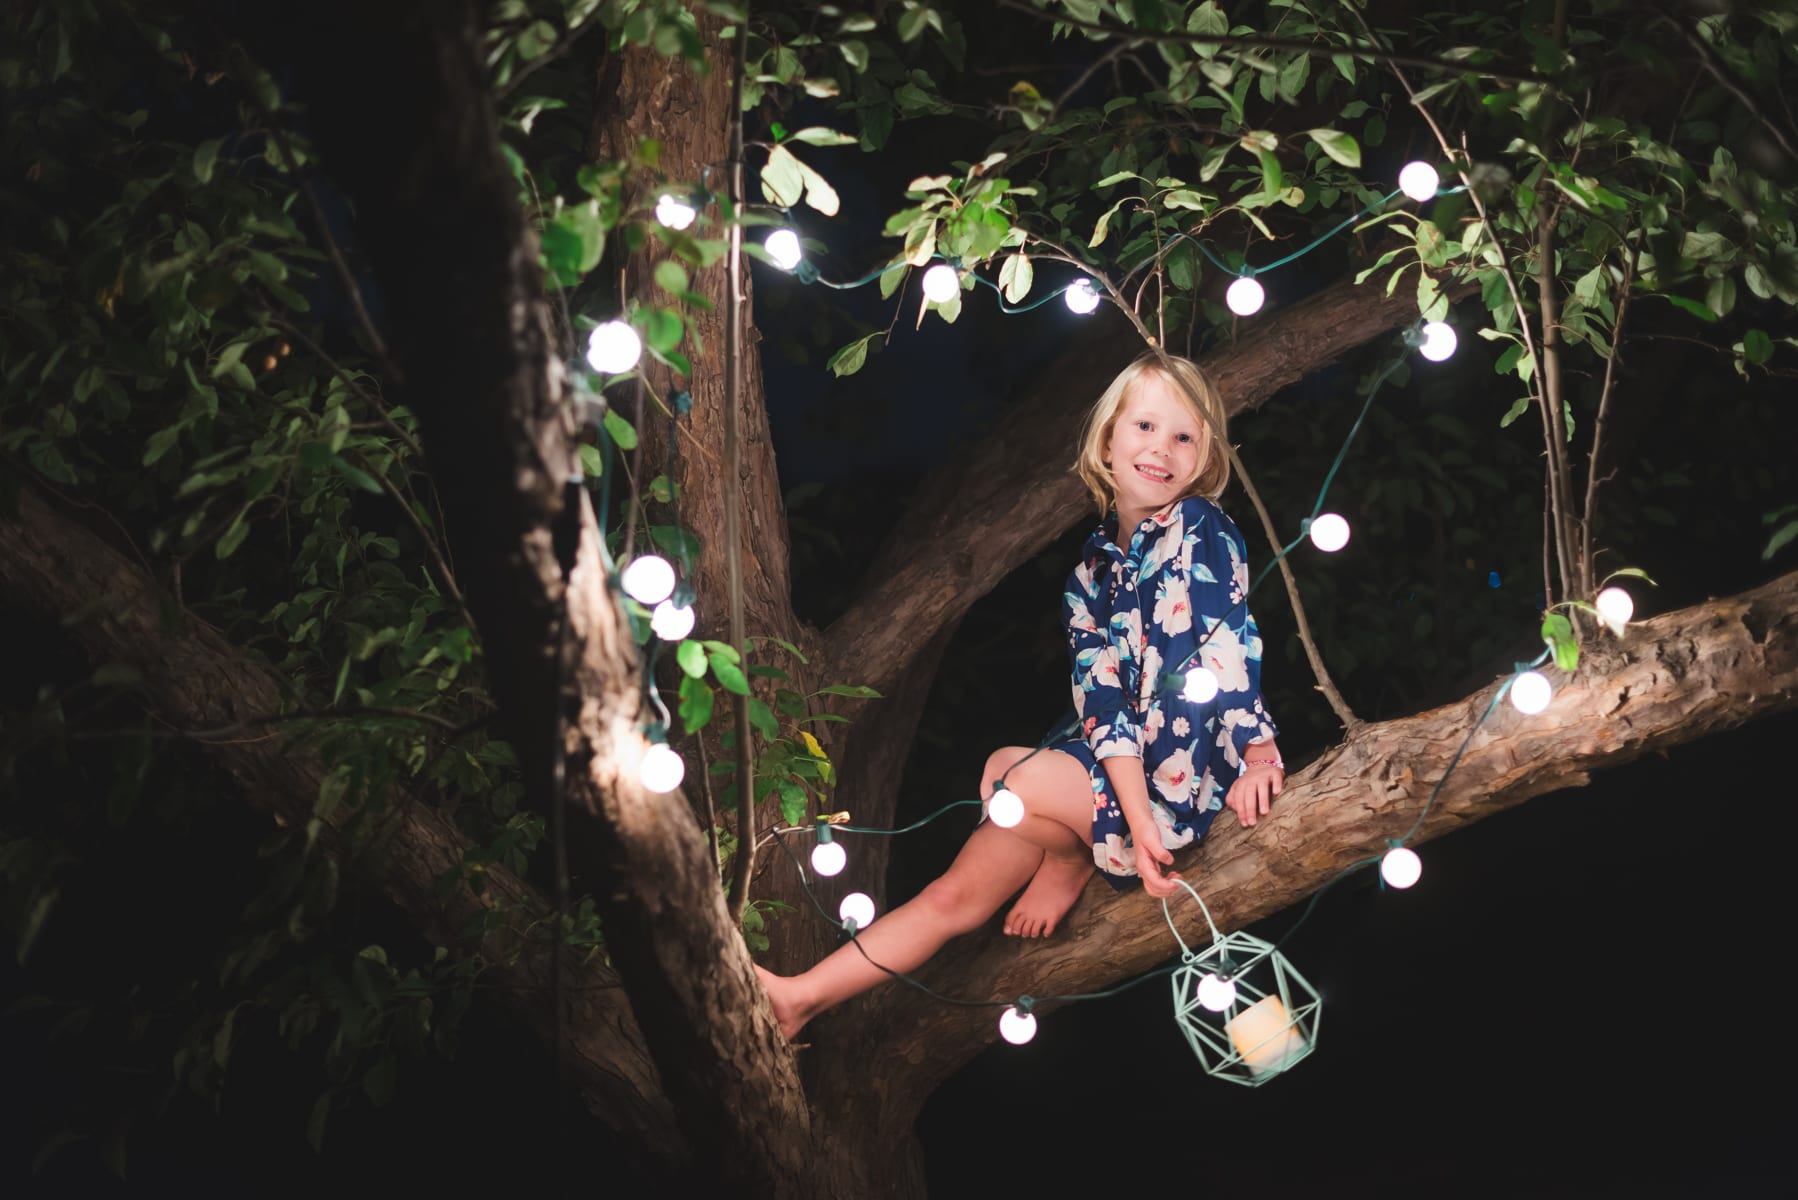 Outdoor Fairy Light Photos   Boulder, CO   Family Photography   From the Hip Photo